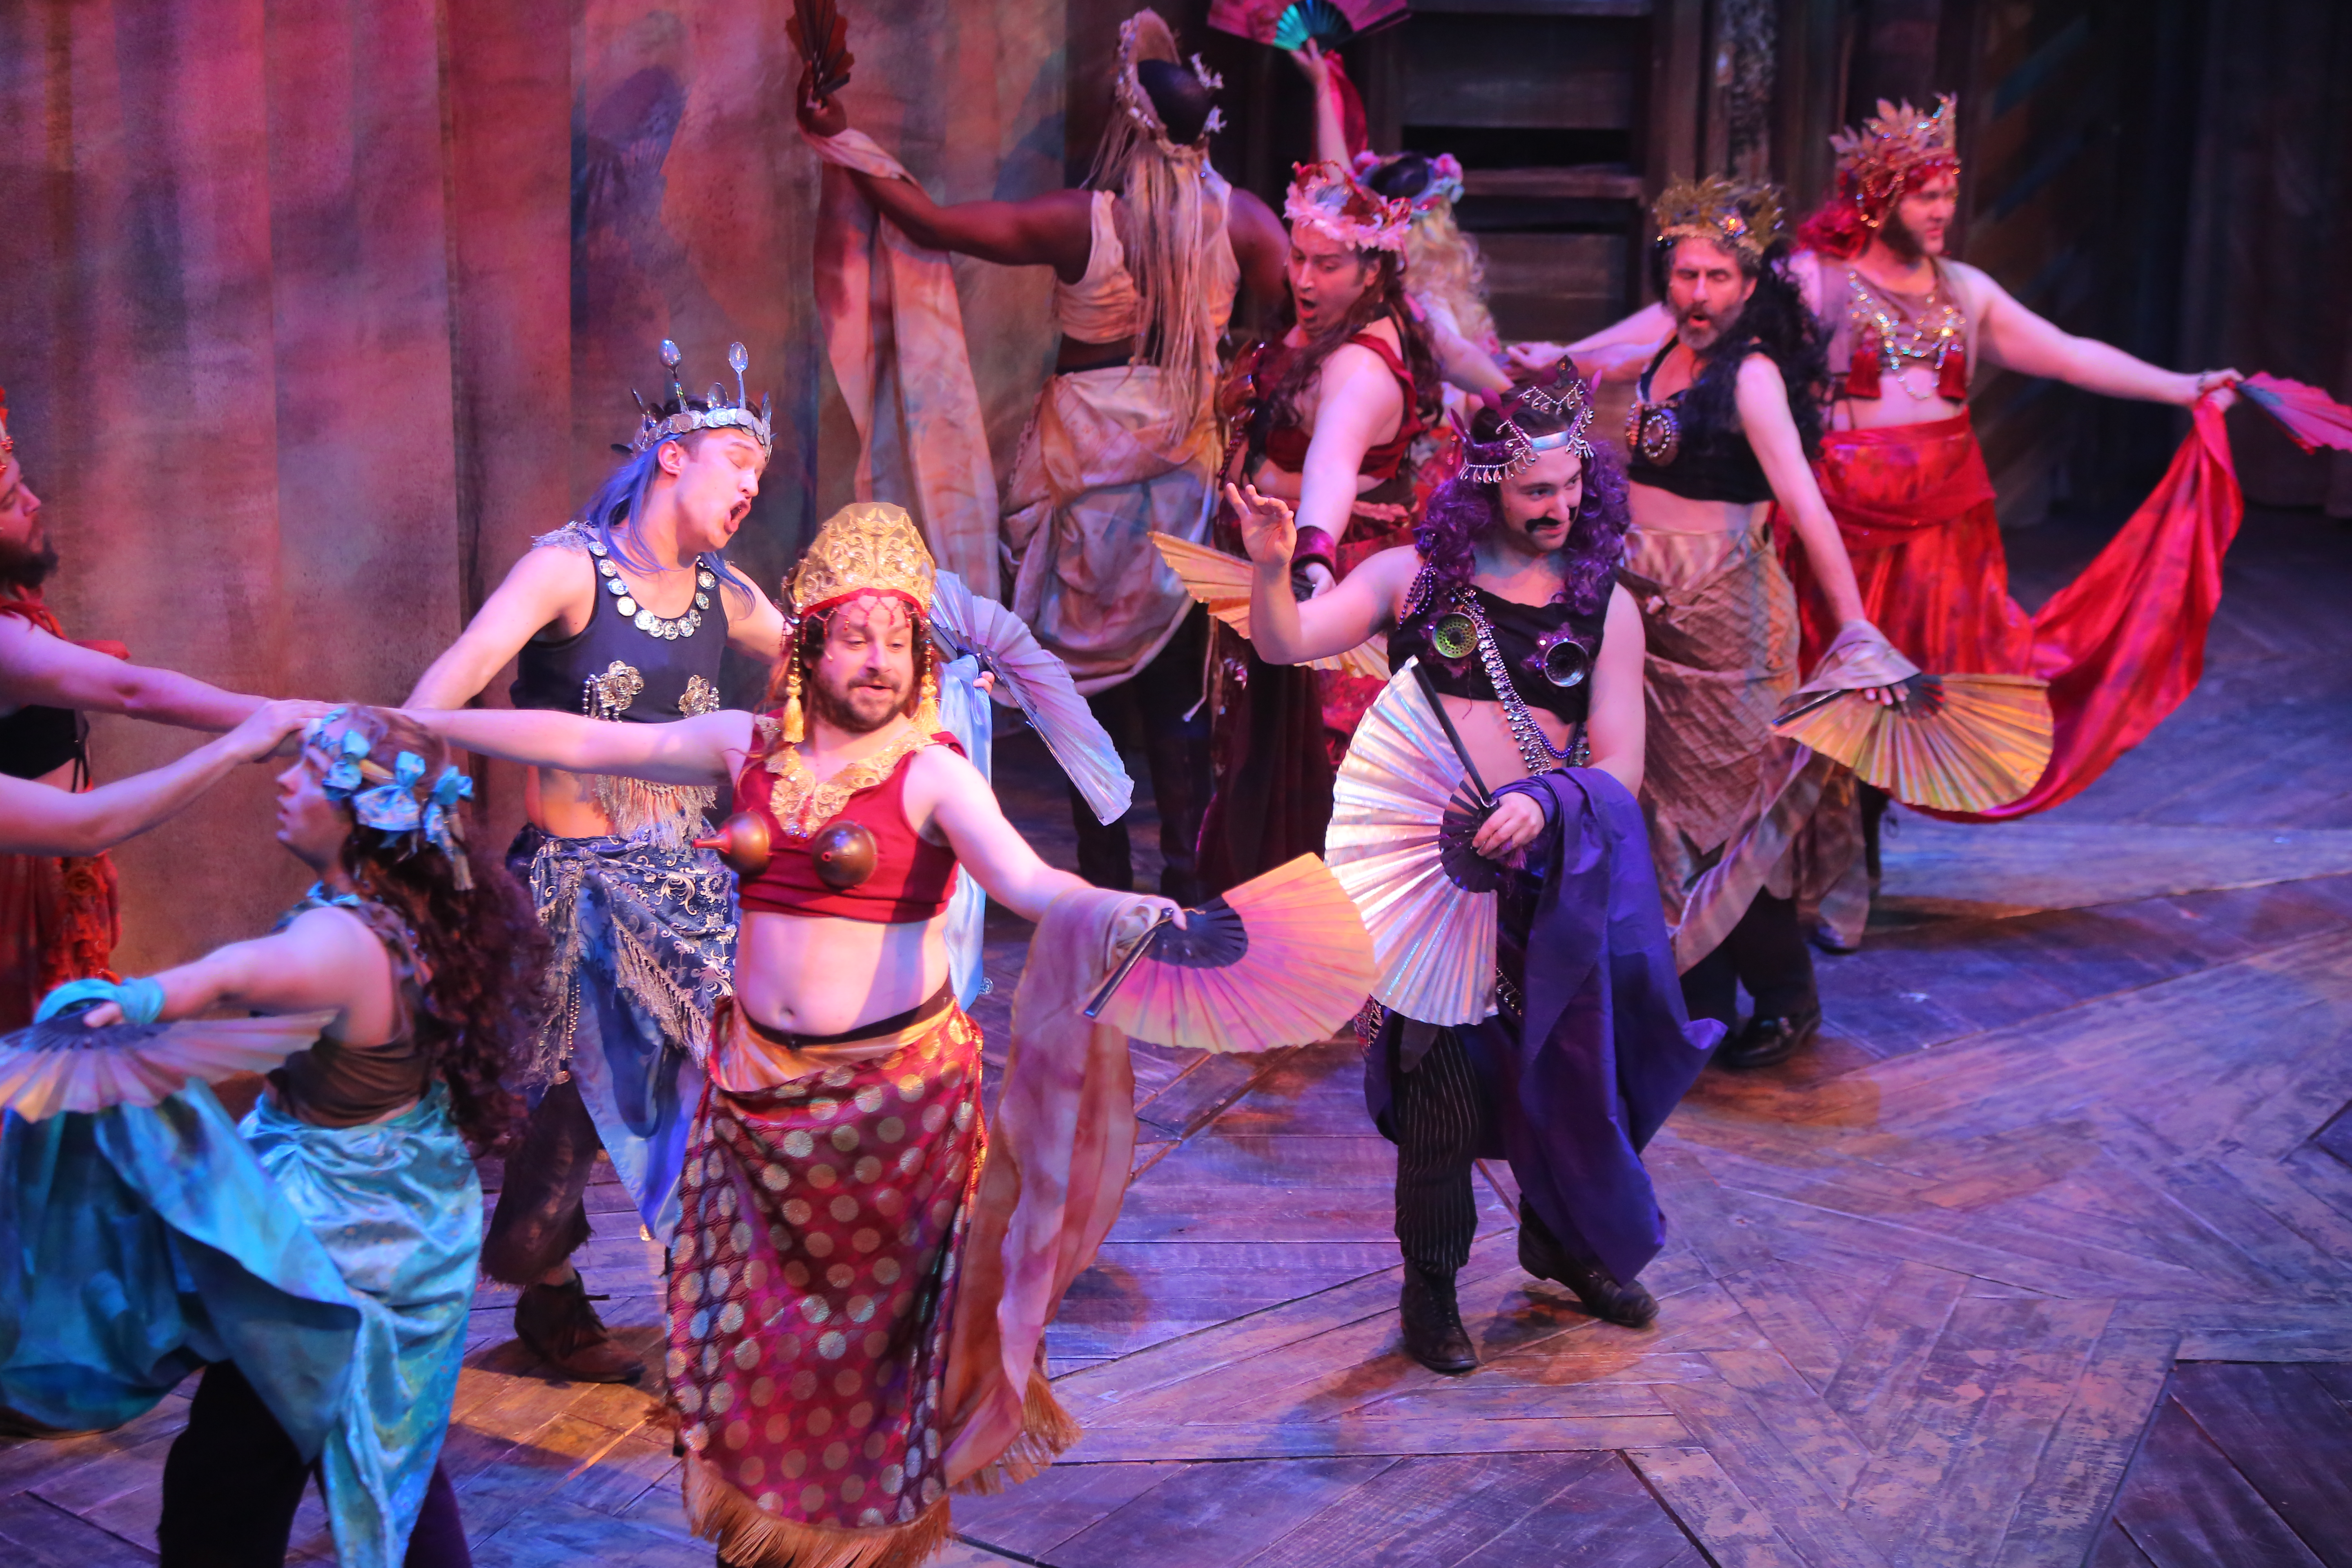 Mermaids Peter and The Starcatcher